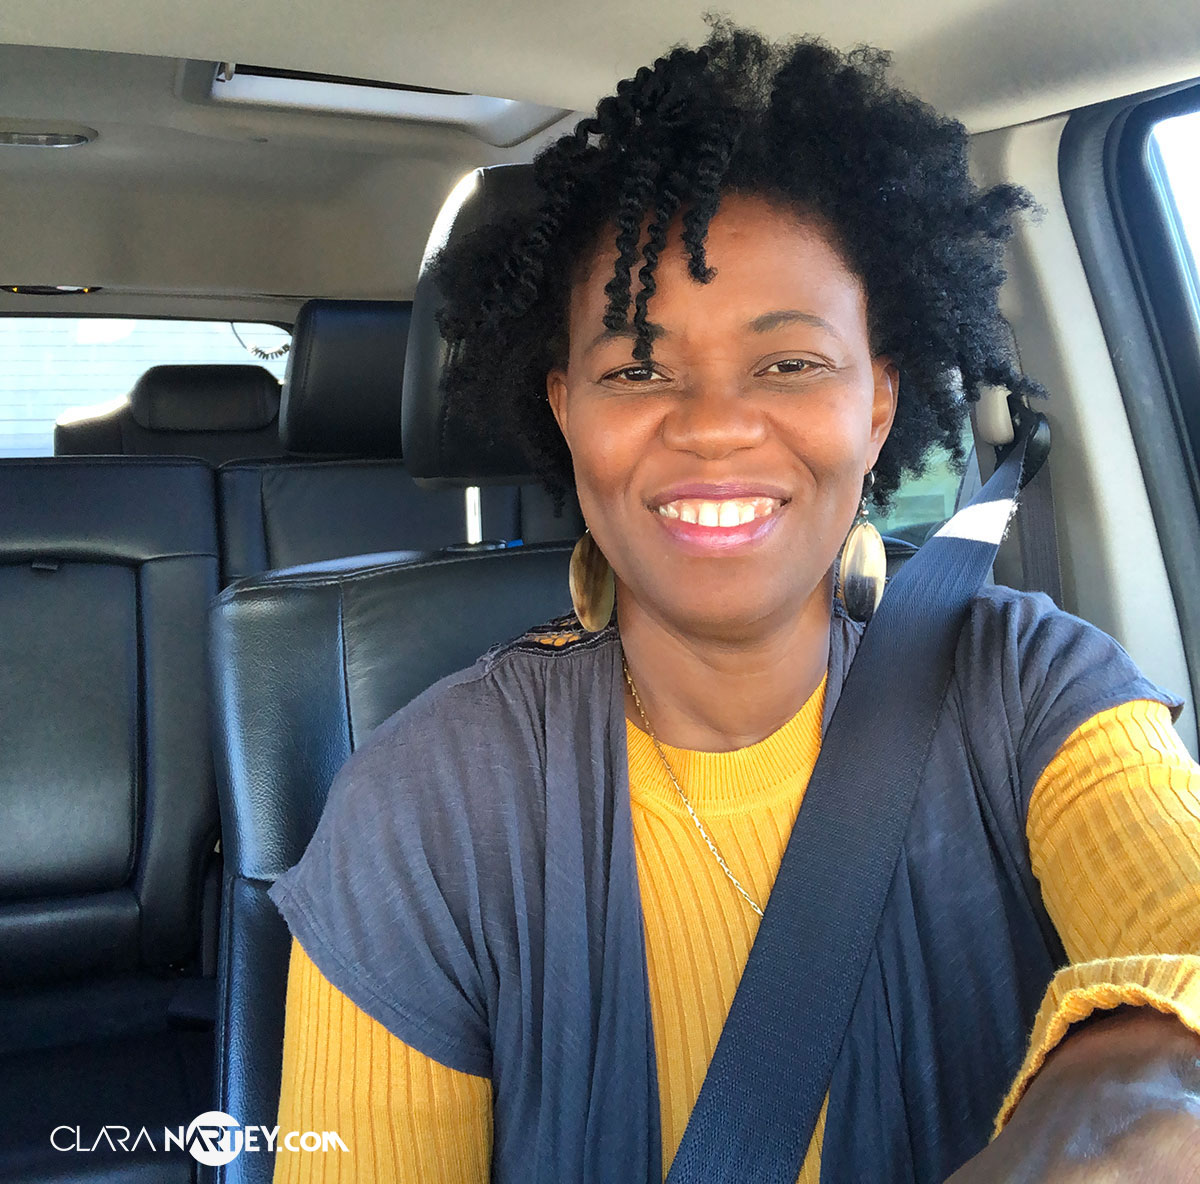 Clara Nartey on the her way to Hang out with Bisa Butler